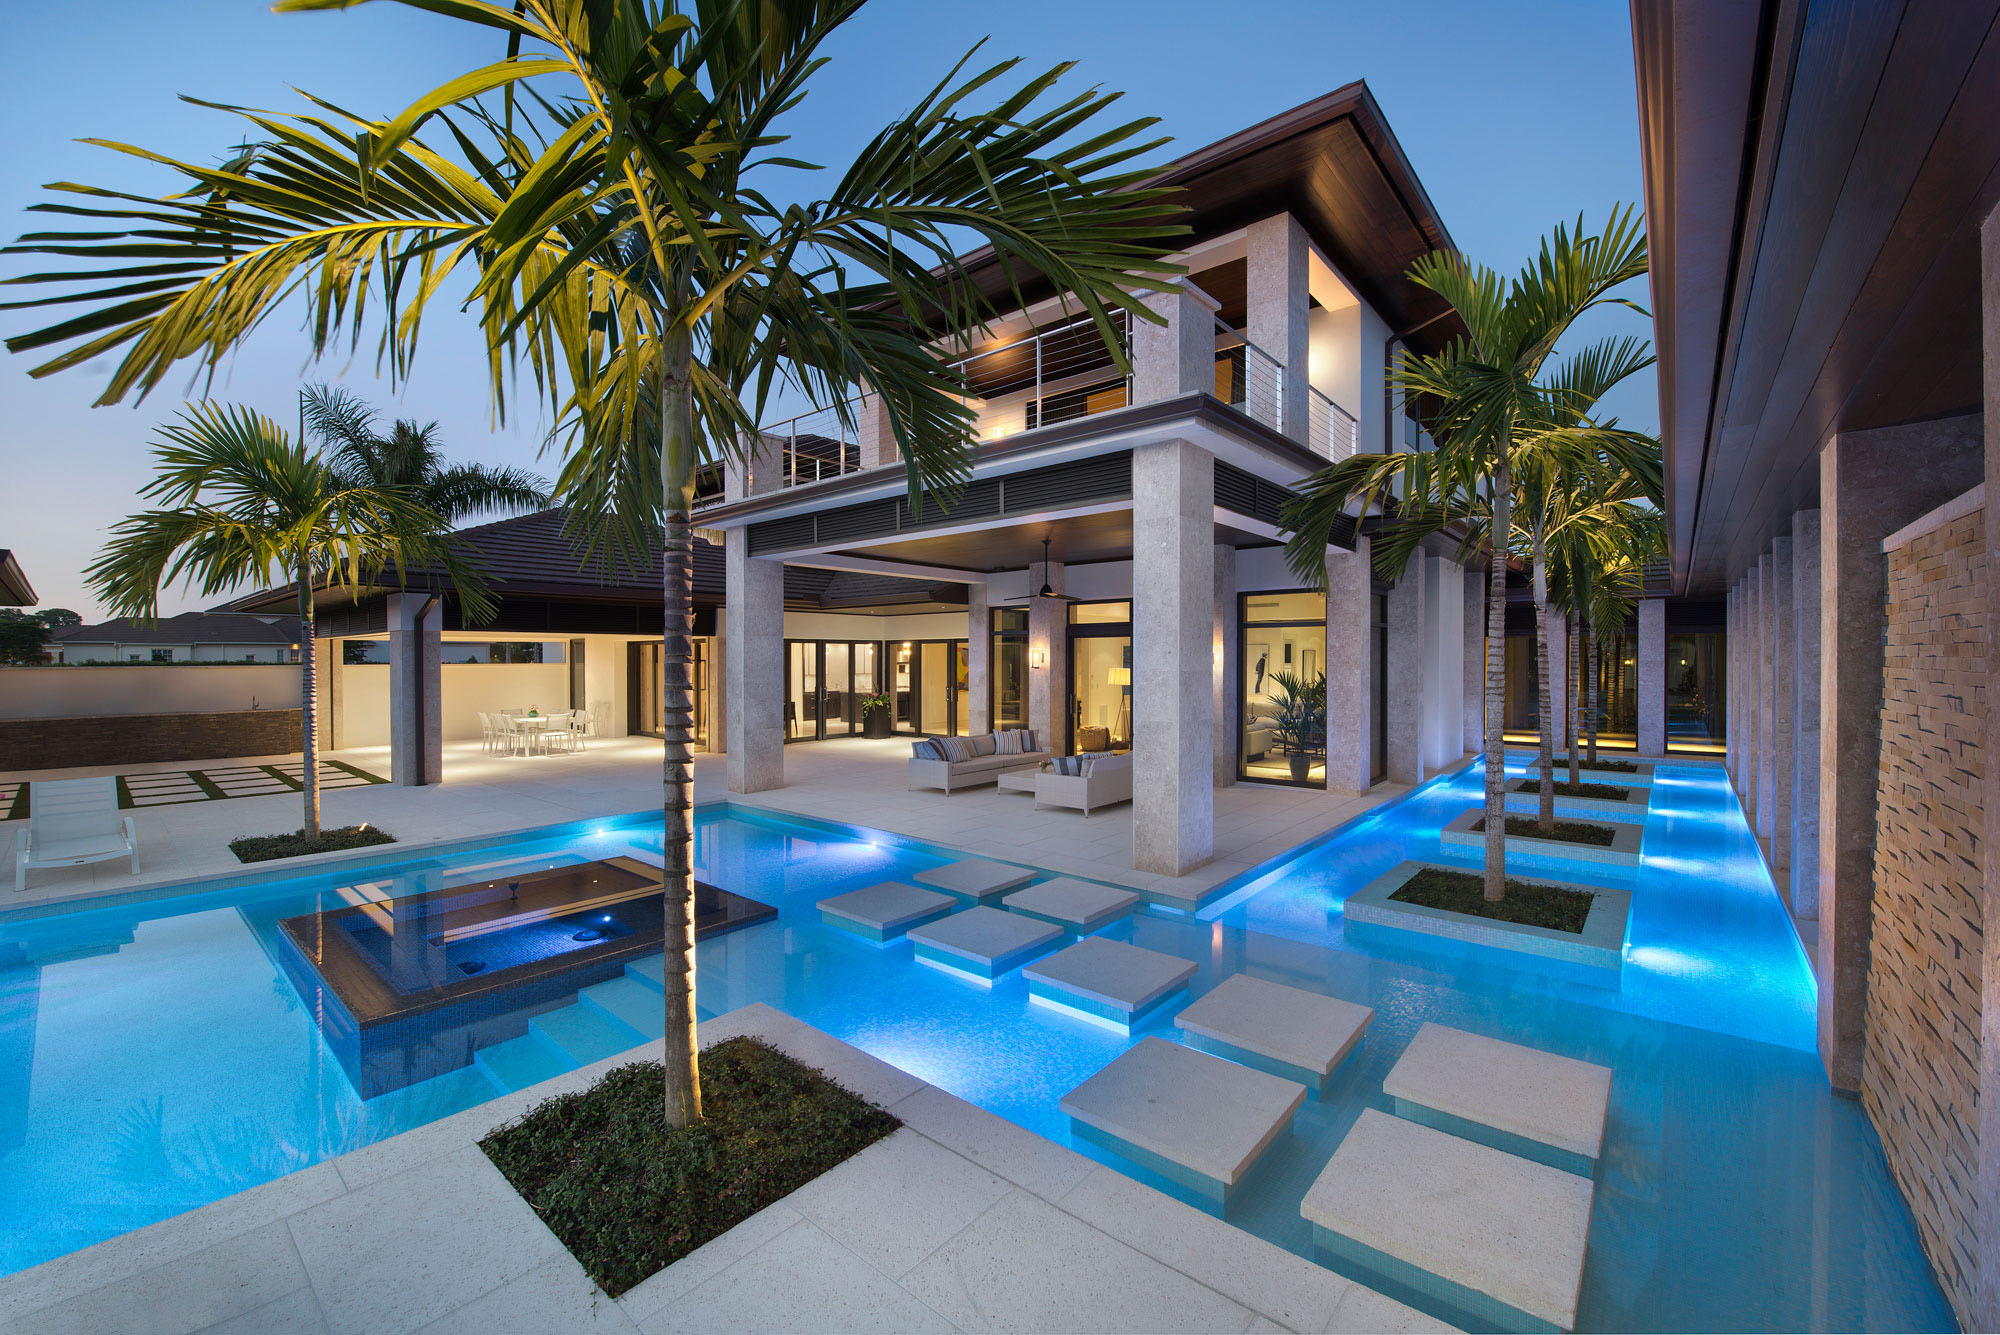 Custom dream home in florida with elegant swimming pool - Modern house with pool ...